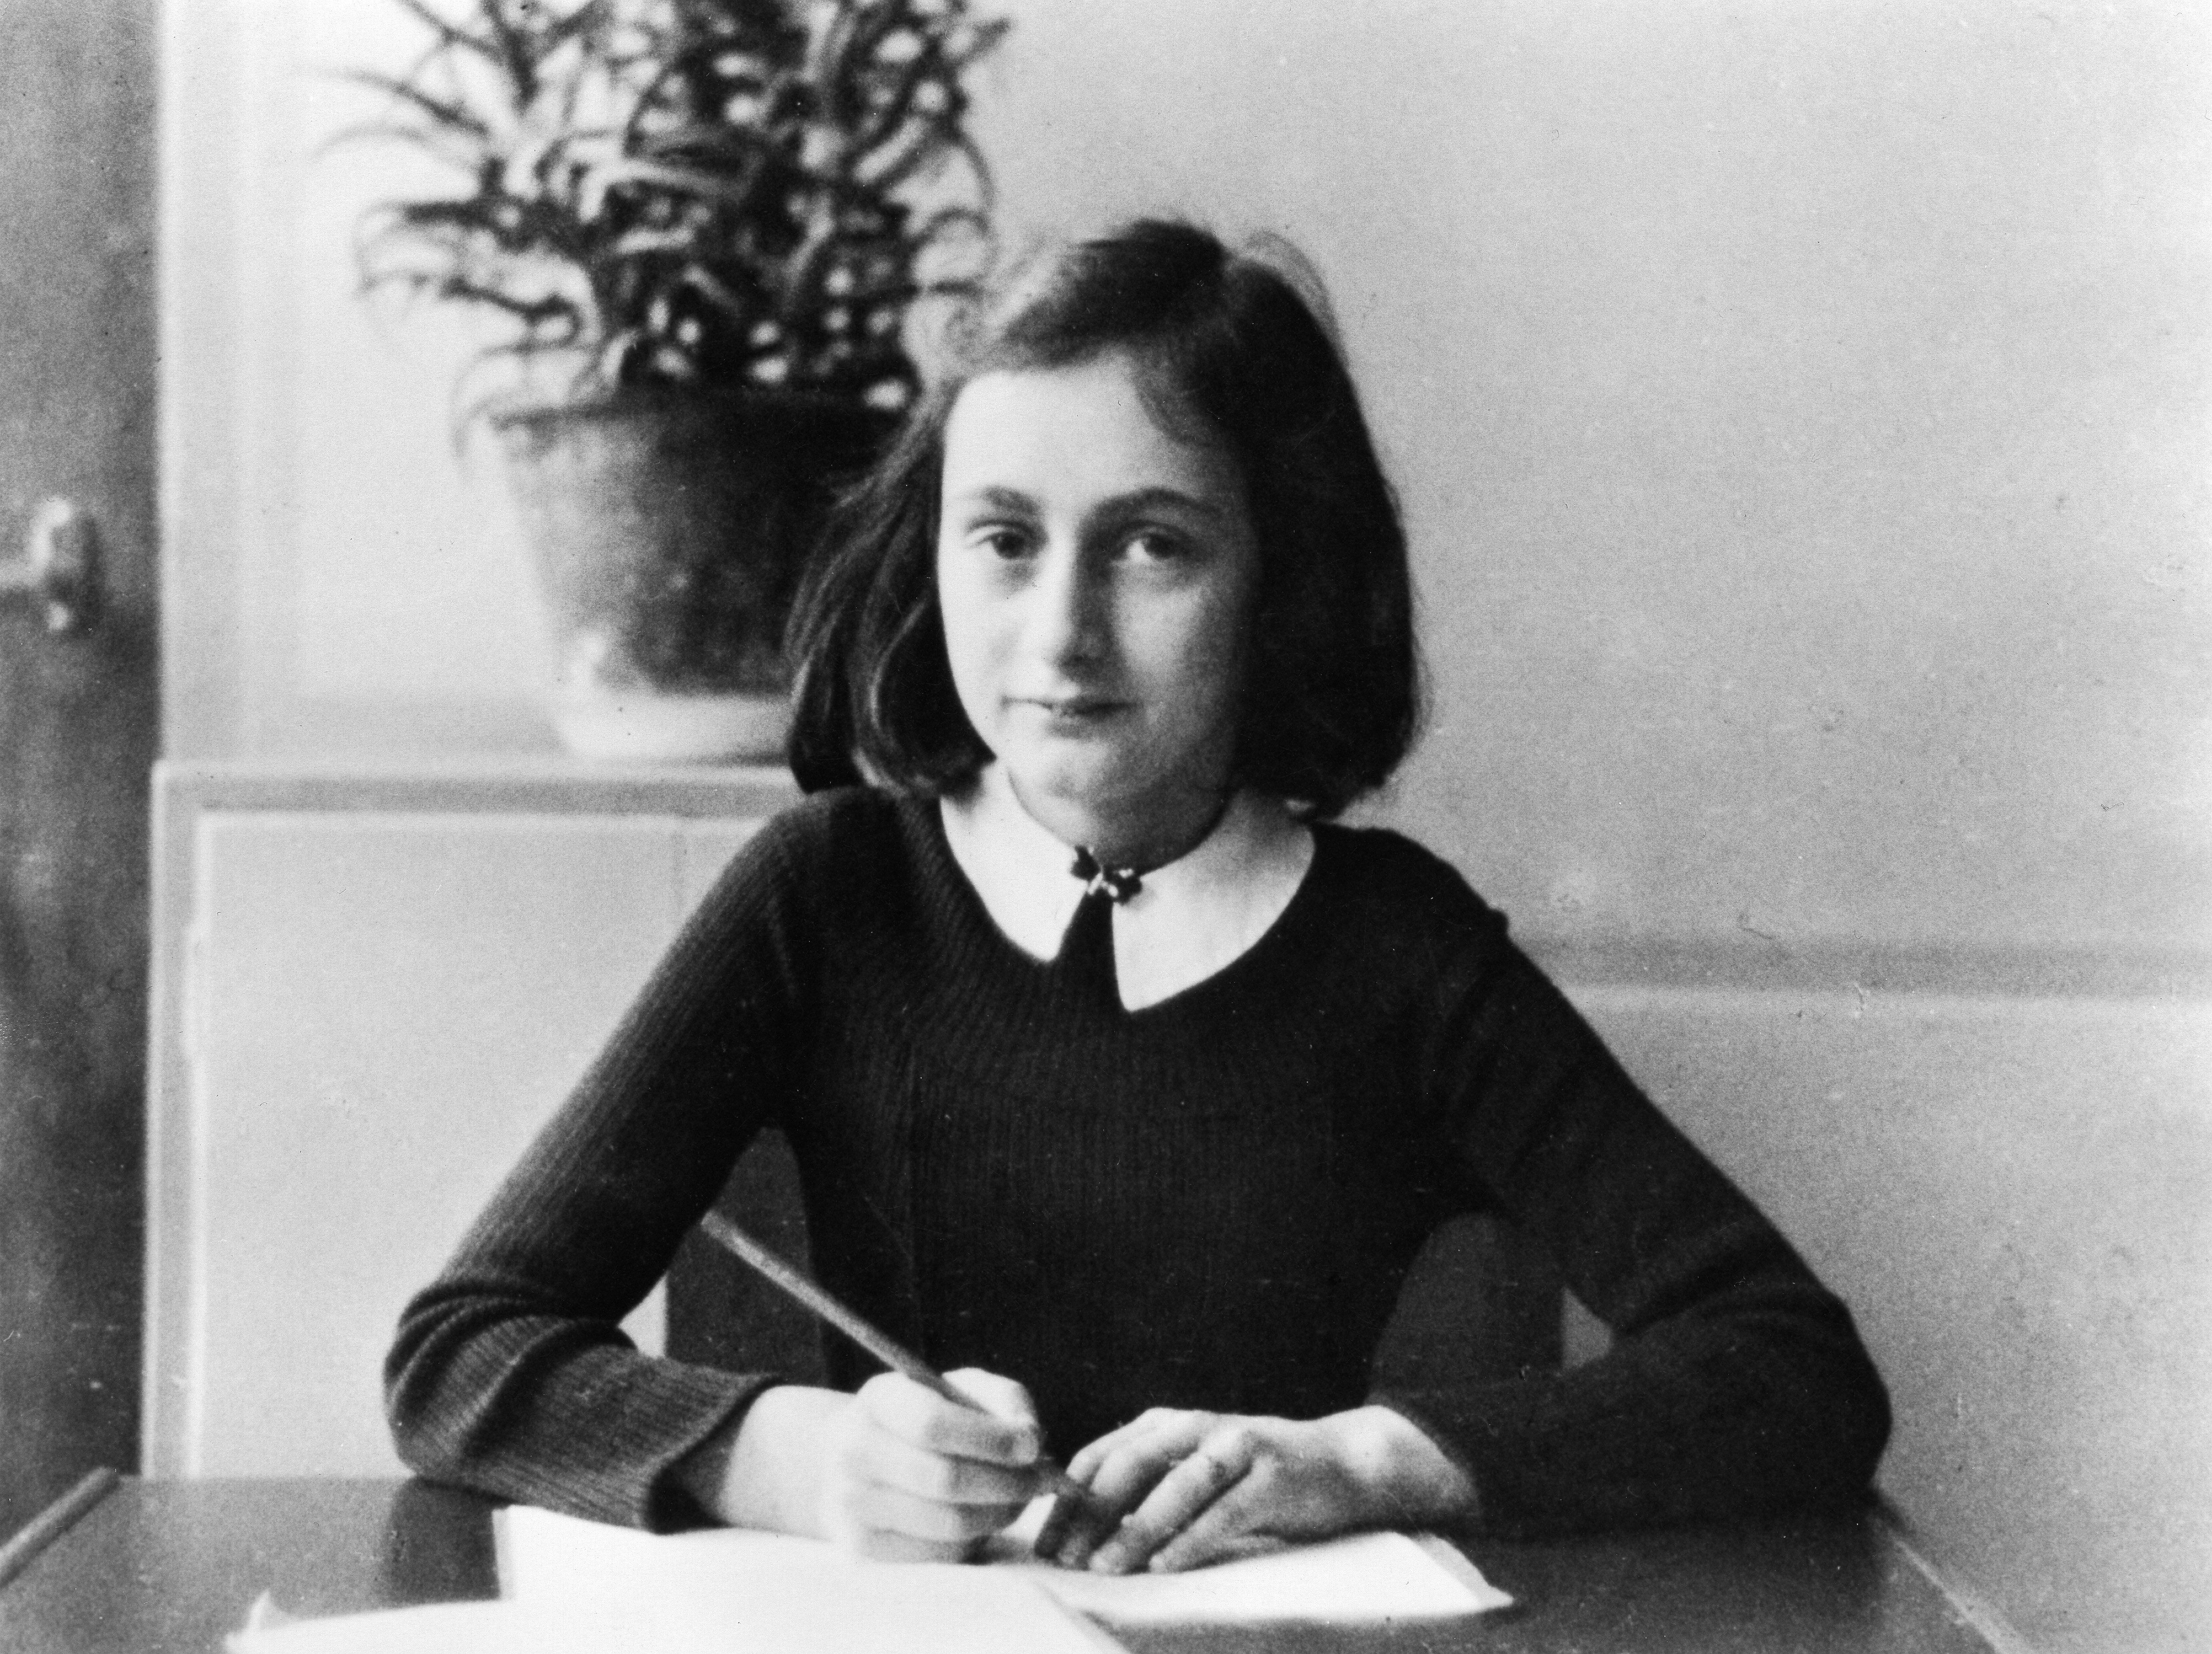 (Eingeschränkte Rechte für bestimmte redaktionelle Kunden in Deutschland. Limited rights for specific editorial clients in Germany.) ' Anne Frank, German Jew who emigrated with her family to the Netherlands during the Nazi era. Separated from the rest of her family, she and her sister died of typhoid fever in the concentration camp Bergen-Belsen - As a 12-year old doing her homework - 1941 (Photo by ADN-Bildarchiv/ullstein bild via Getty Images)